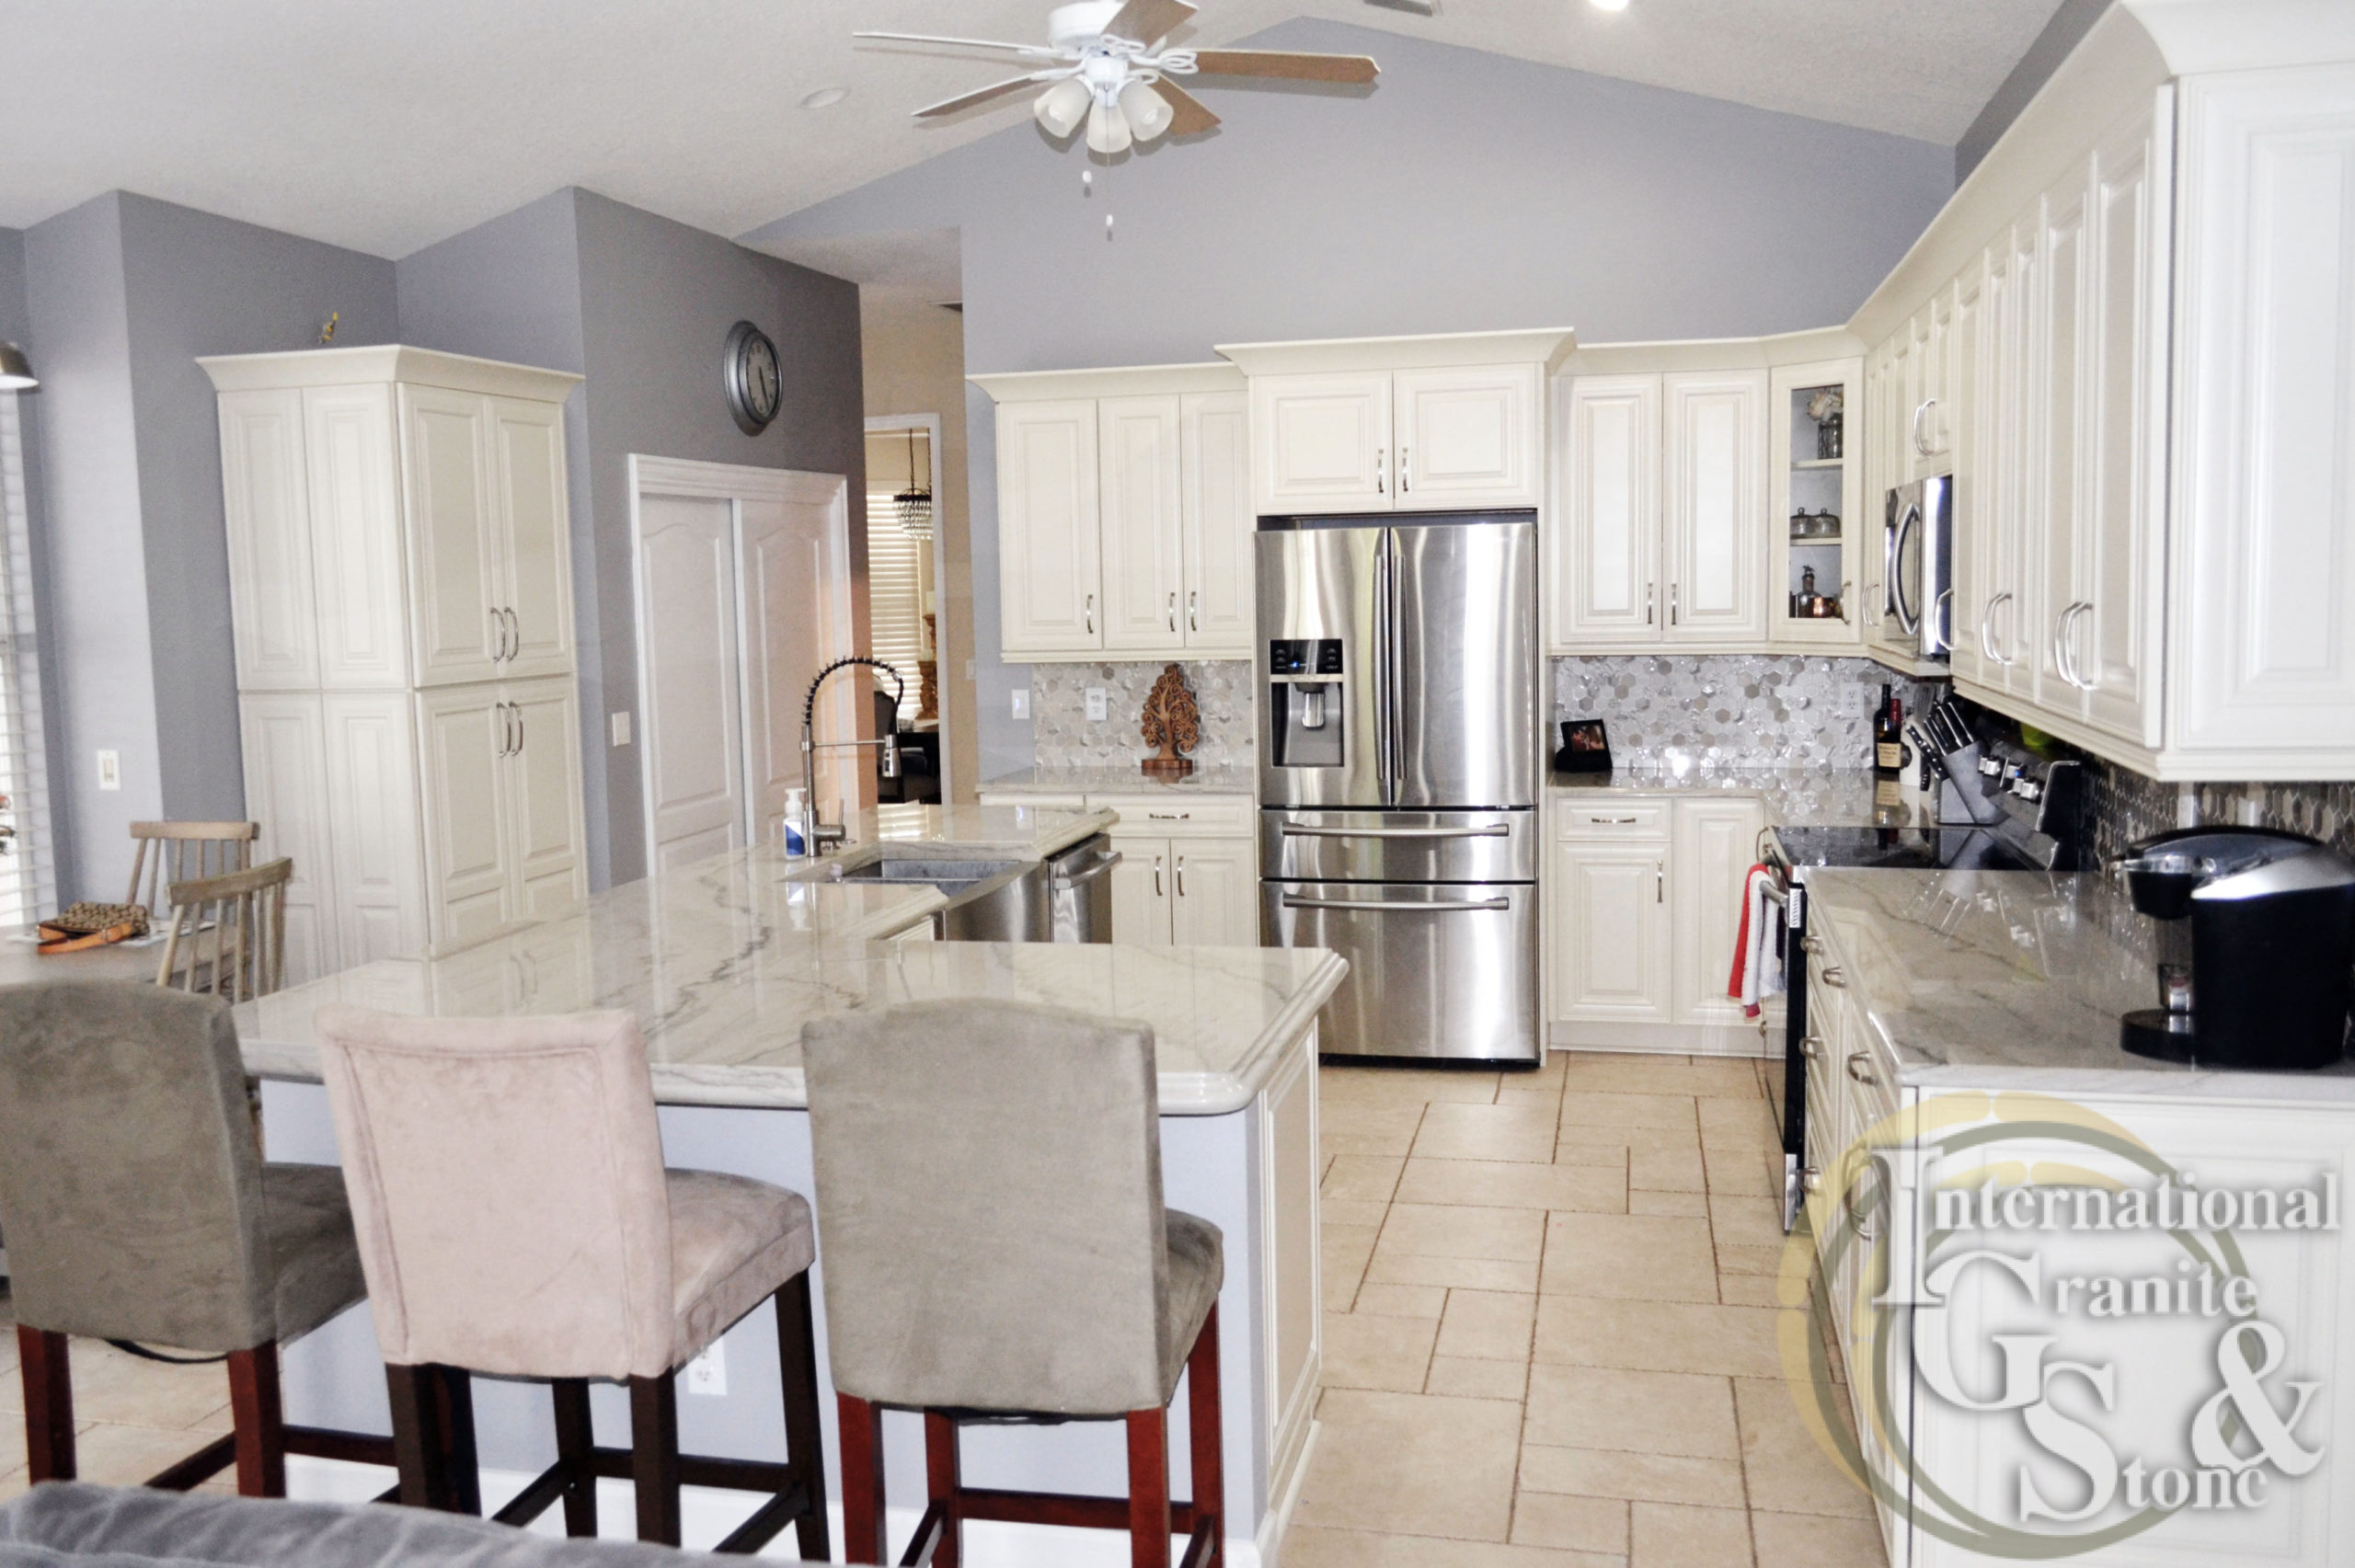 Calacatta Quartzite Kitchen with Bar Stool Chairs and White Cabinets